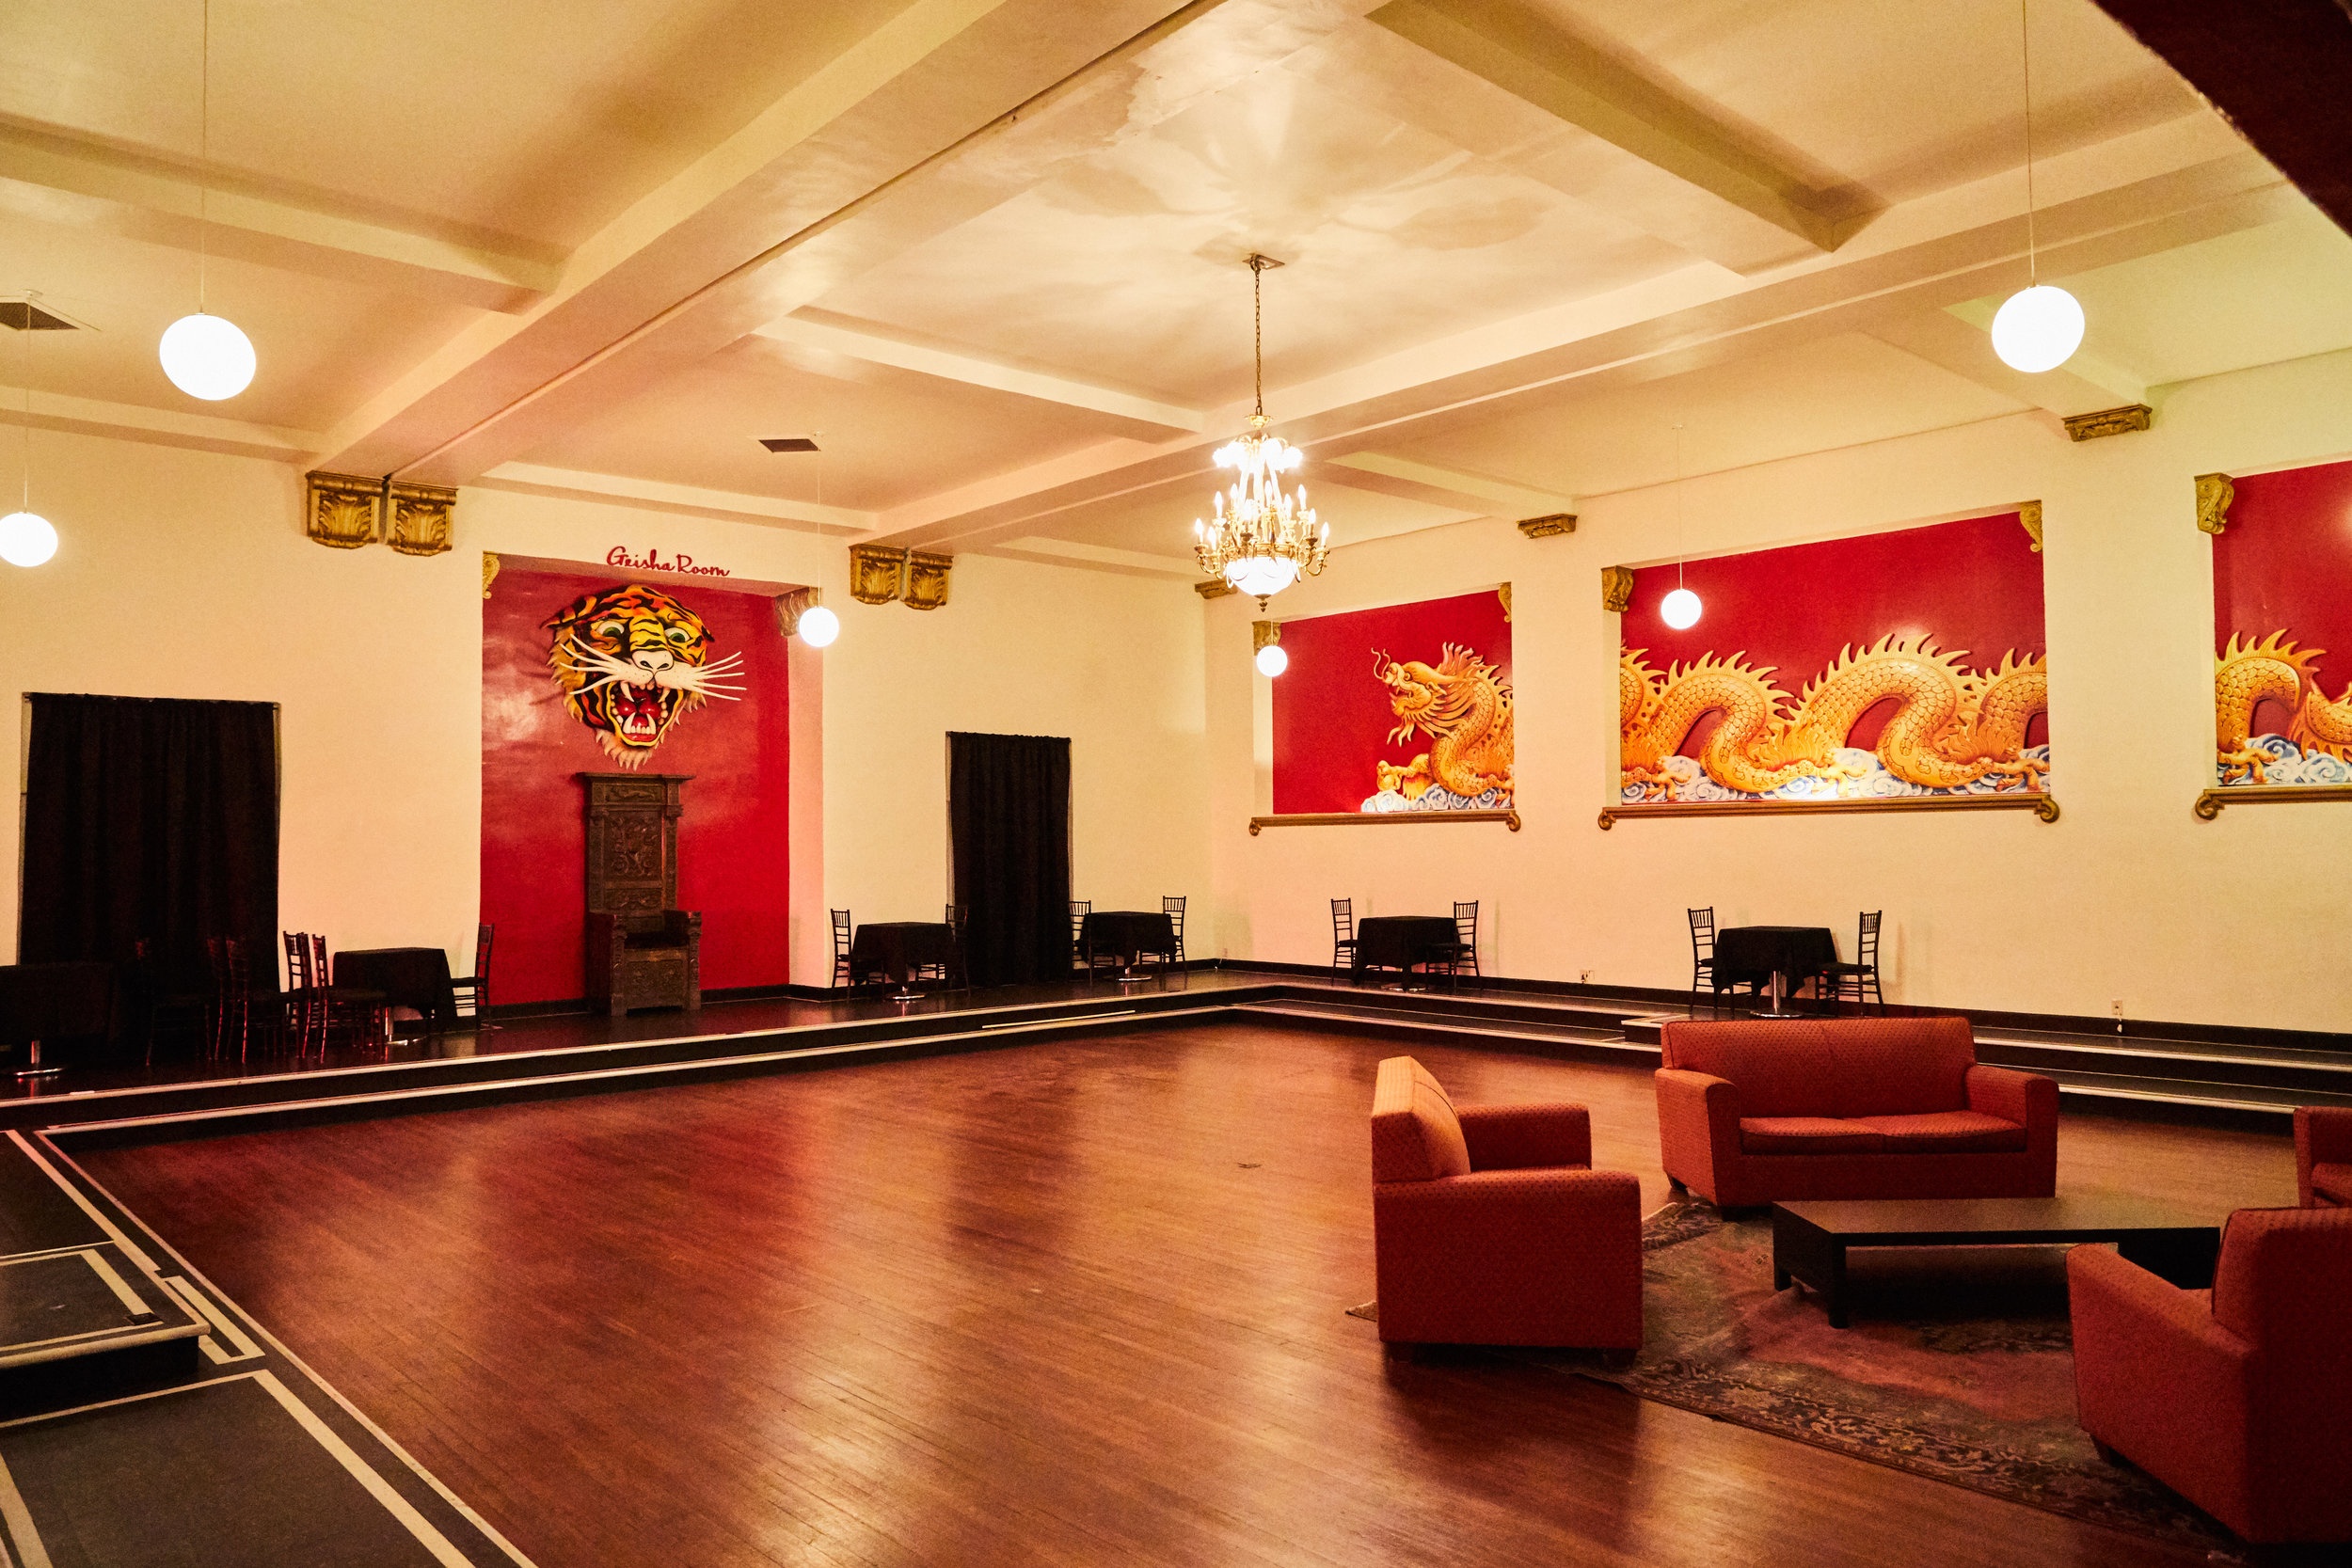 GEISHA ROOM - 1,569 sq. ft. | Capacity: 150 (cocktail only)